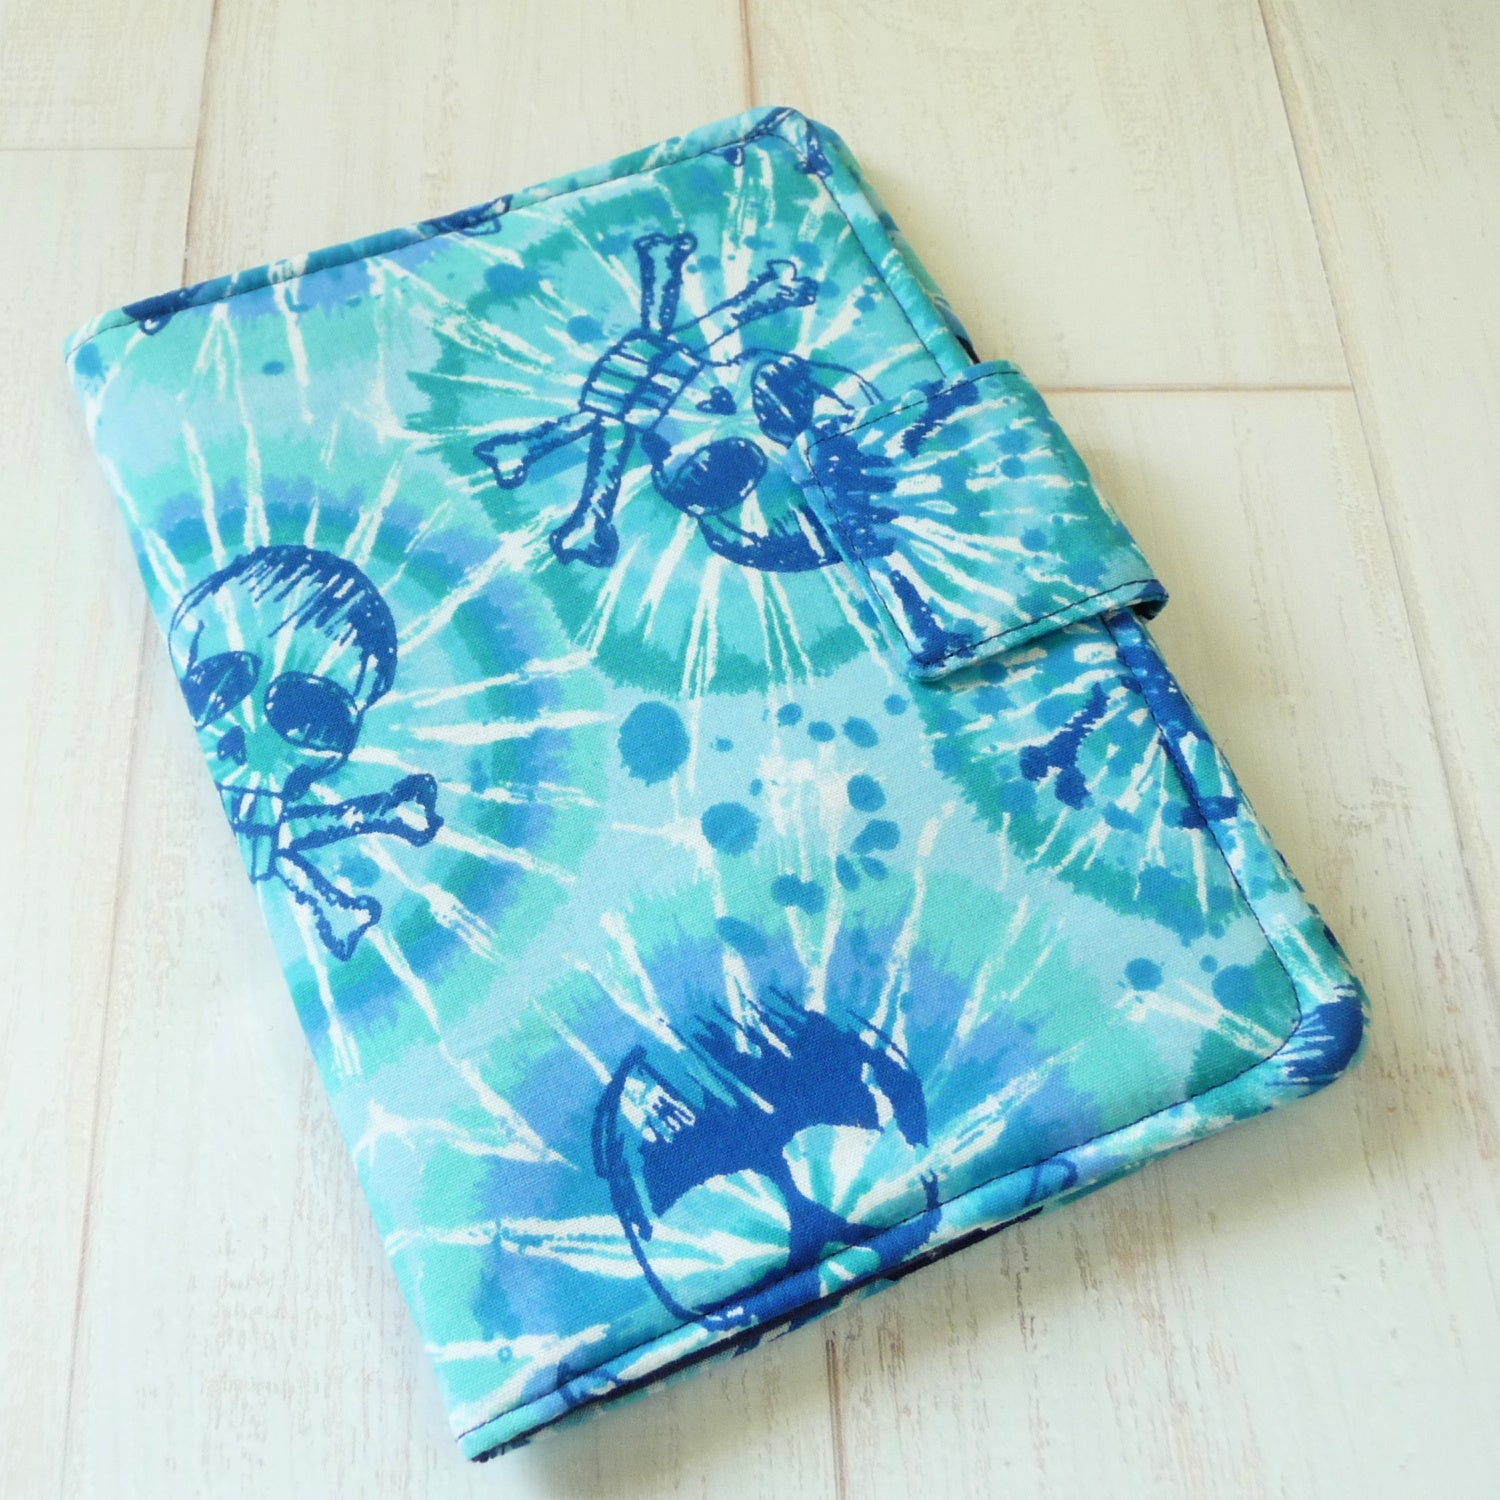 Blue Tie Dye Skulls Kindle Cover